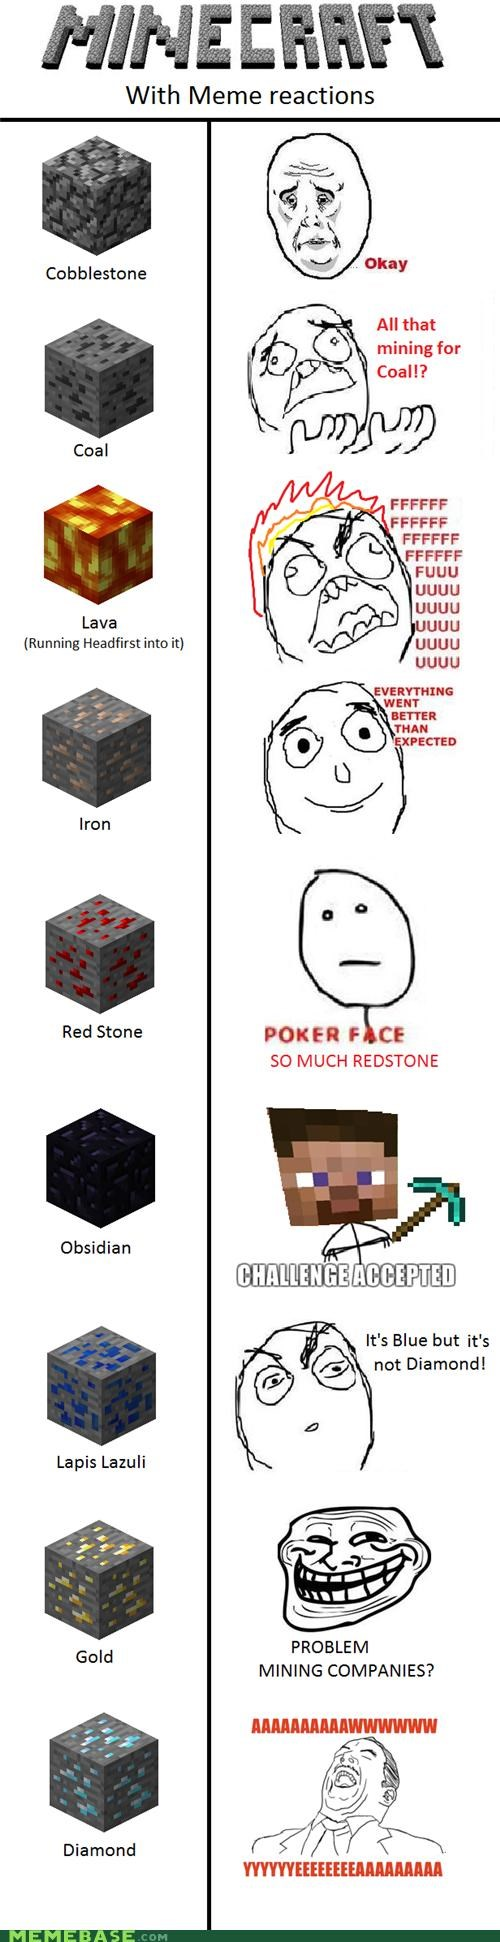 Memes minecraft video game video games - 4464163328